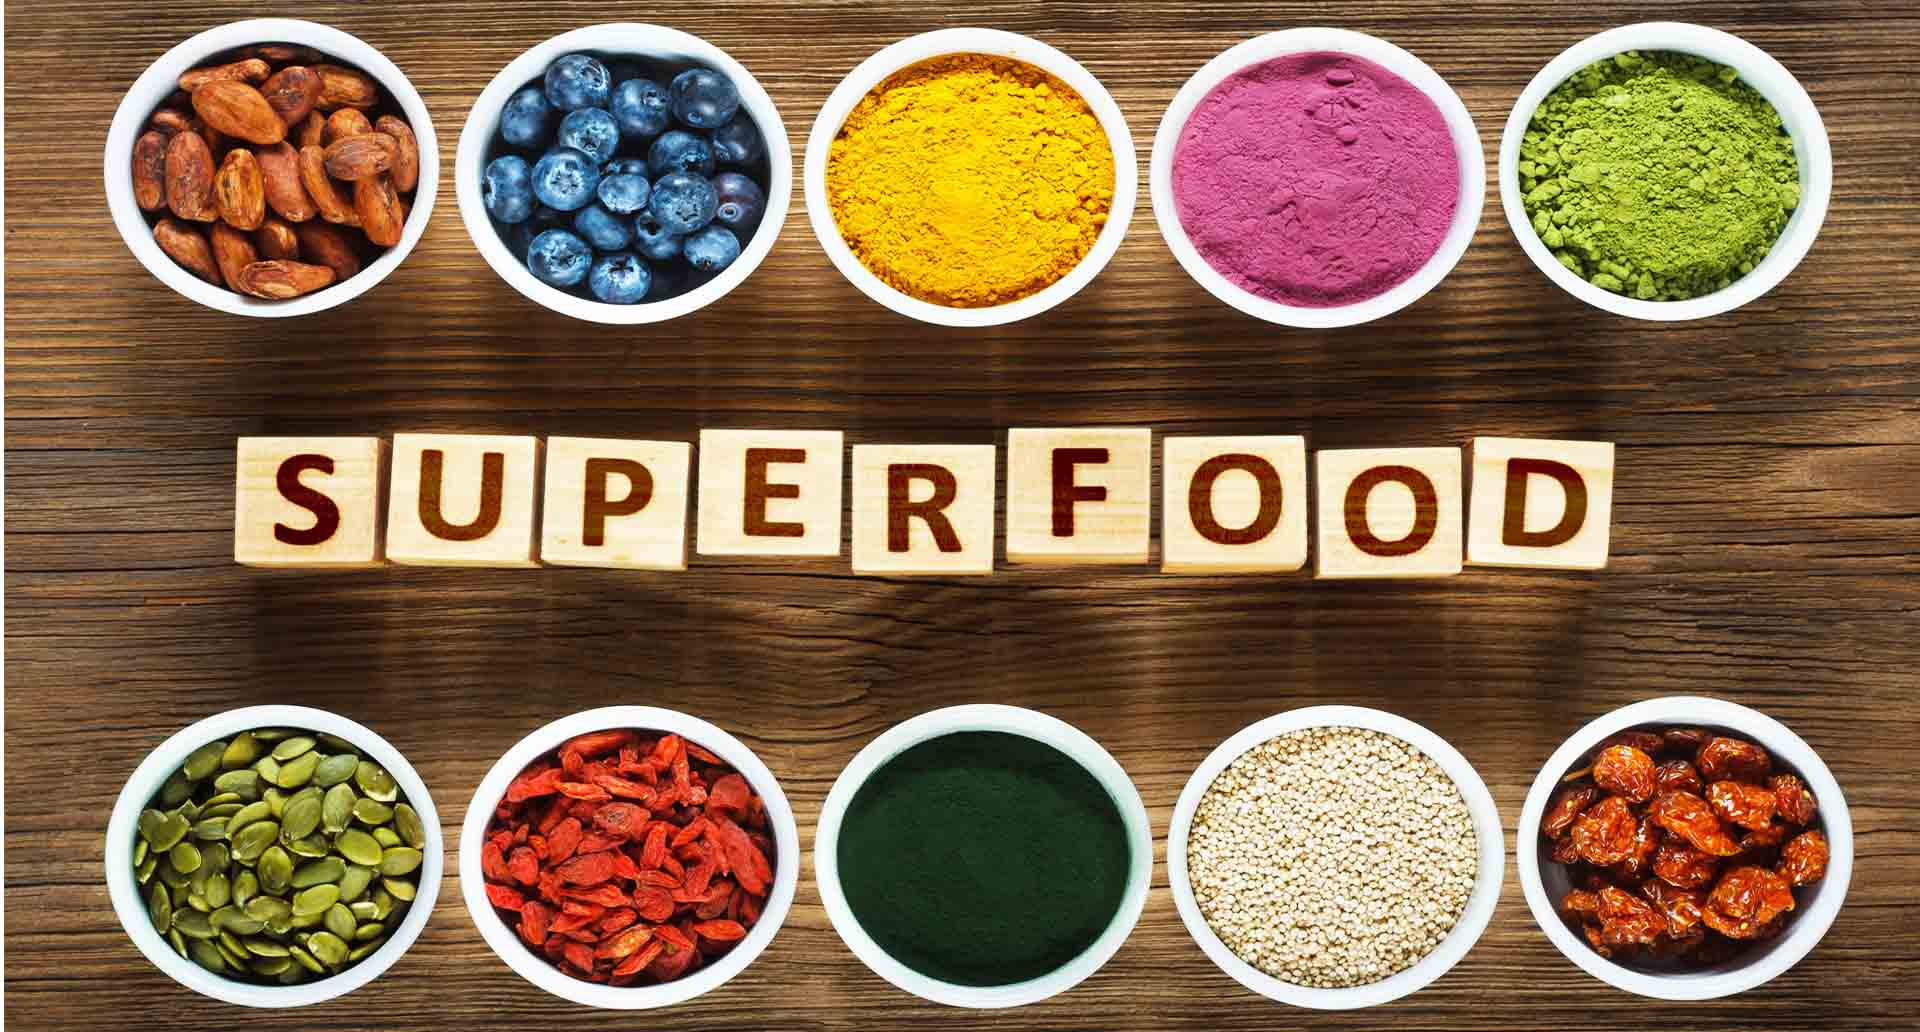 Superfoods, SuperAlimentos